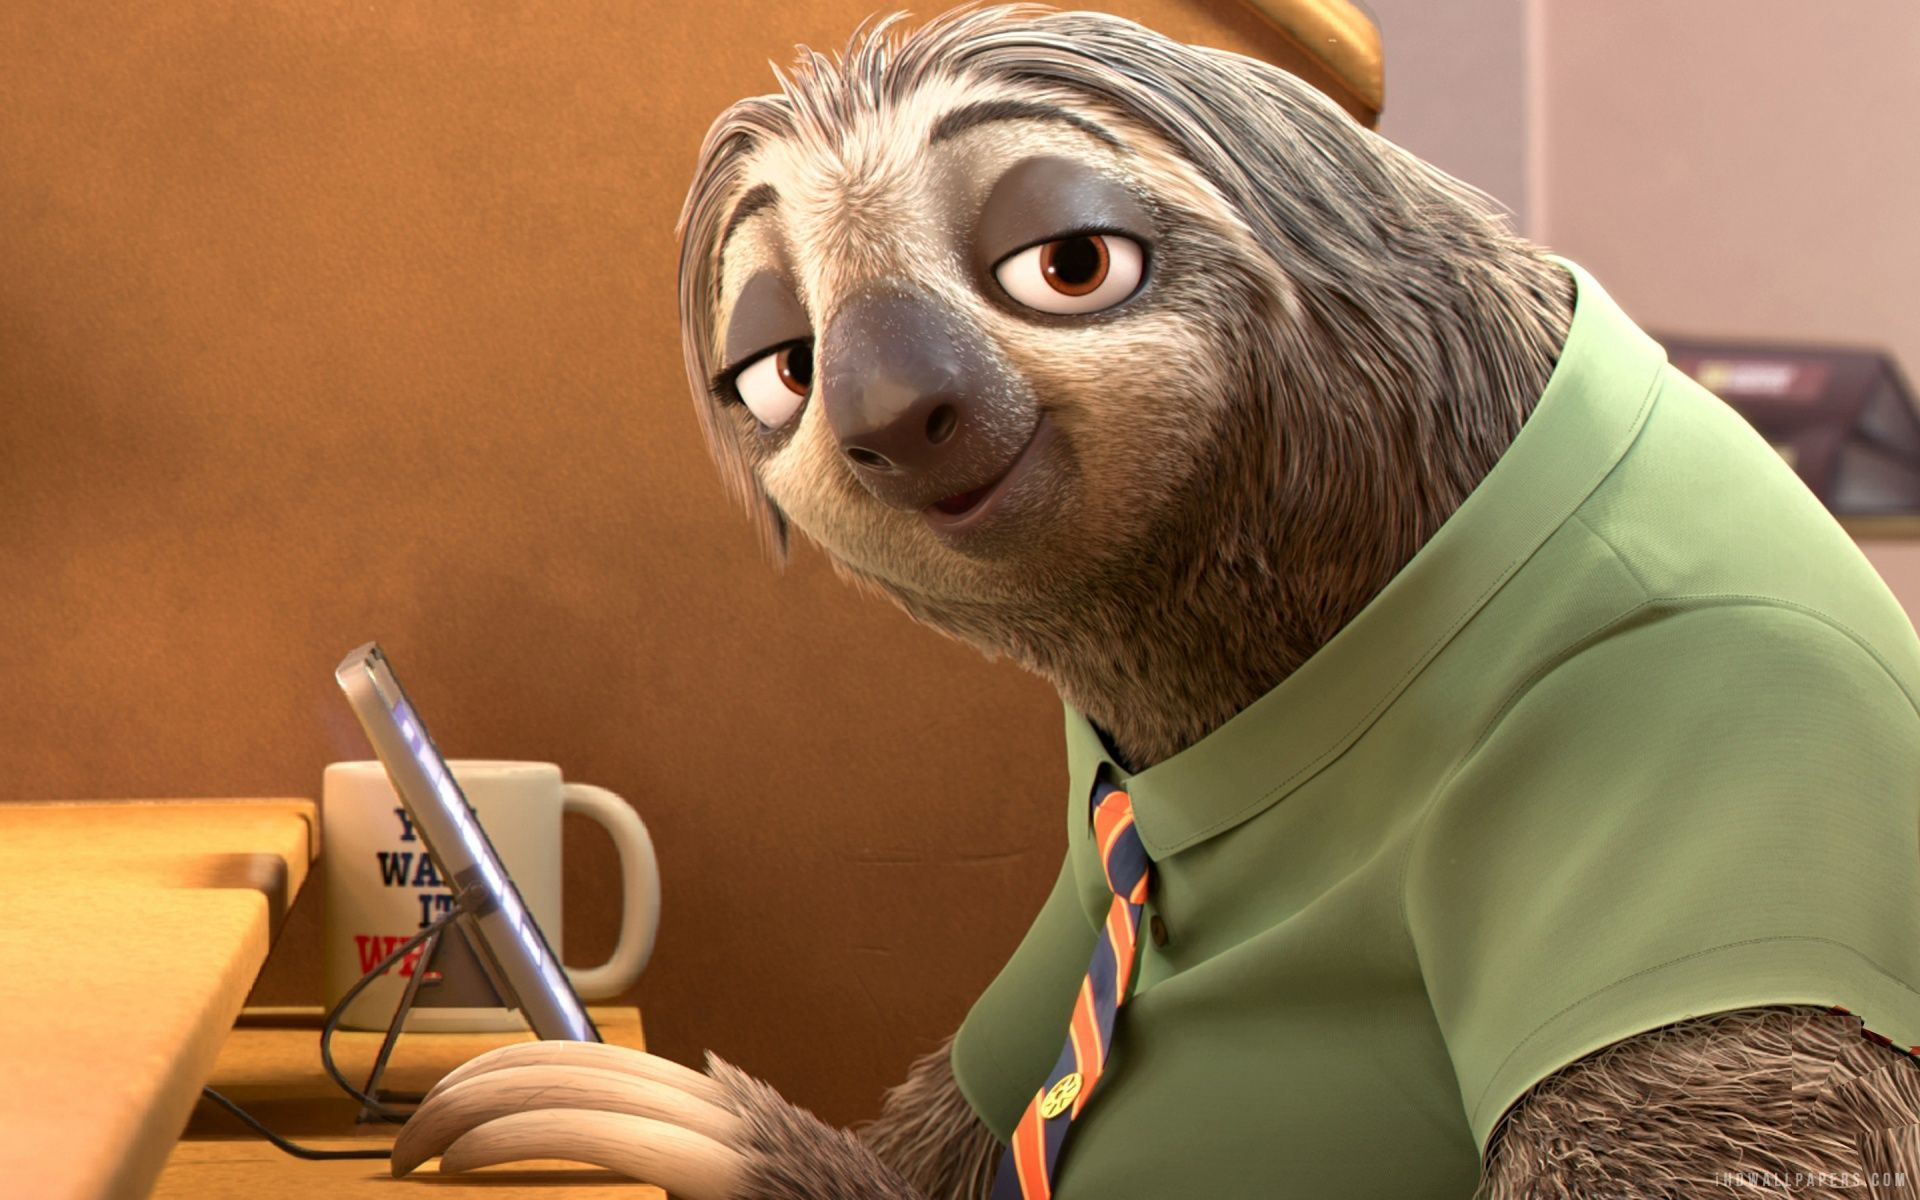 Sloth in Zootopia Movie HD Wallpaper - iHD Wallpapers